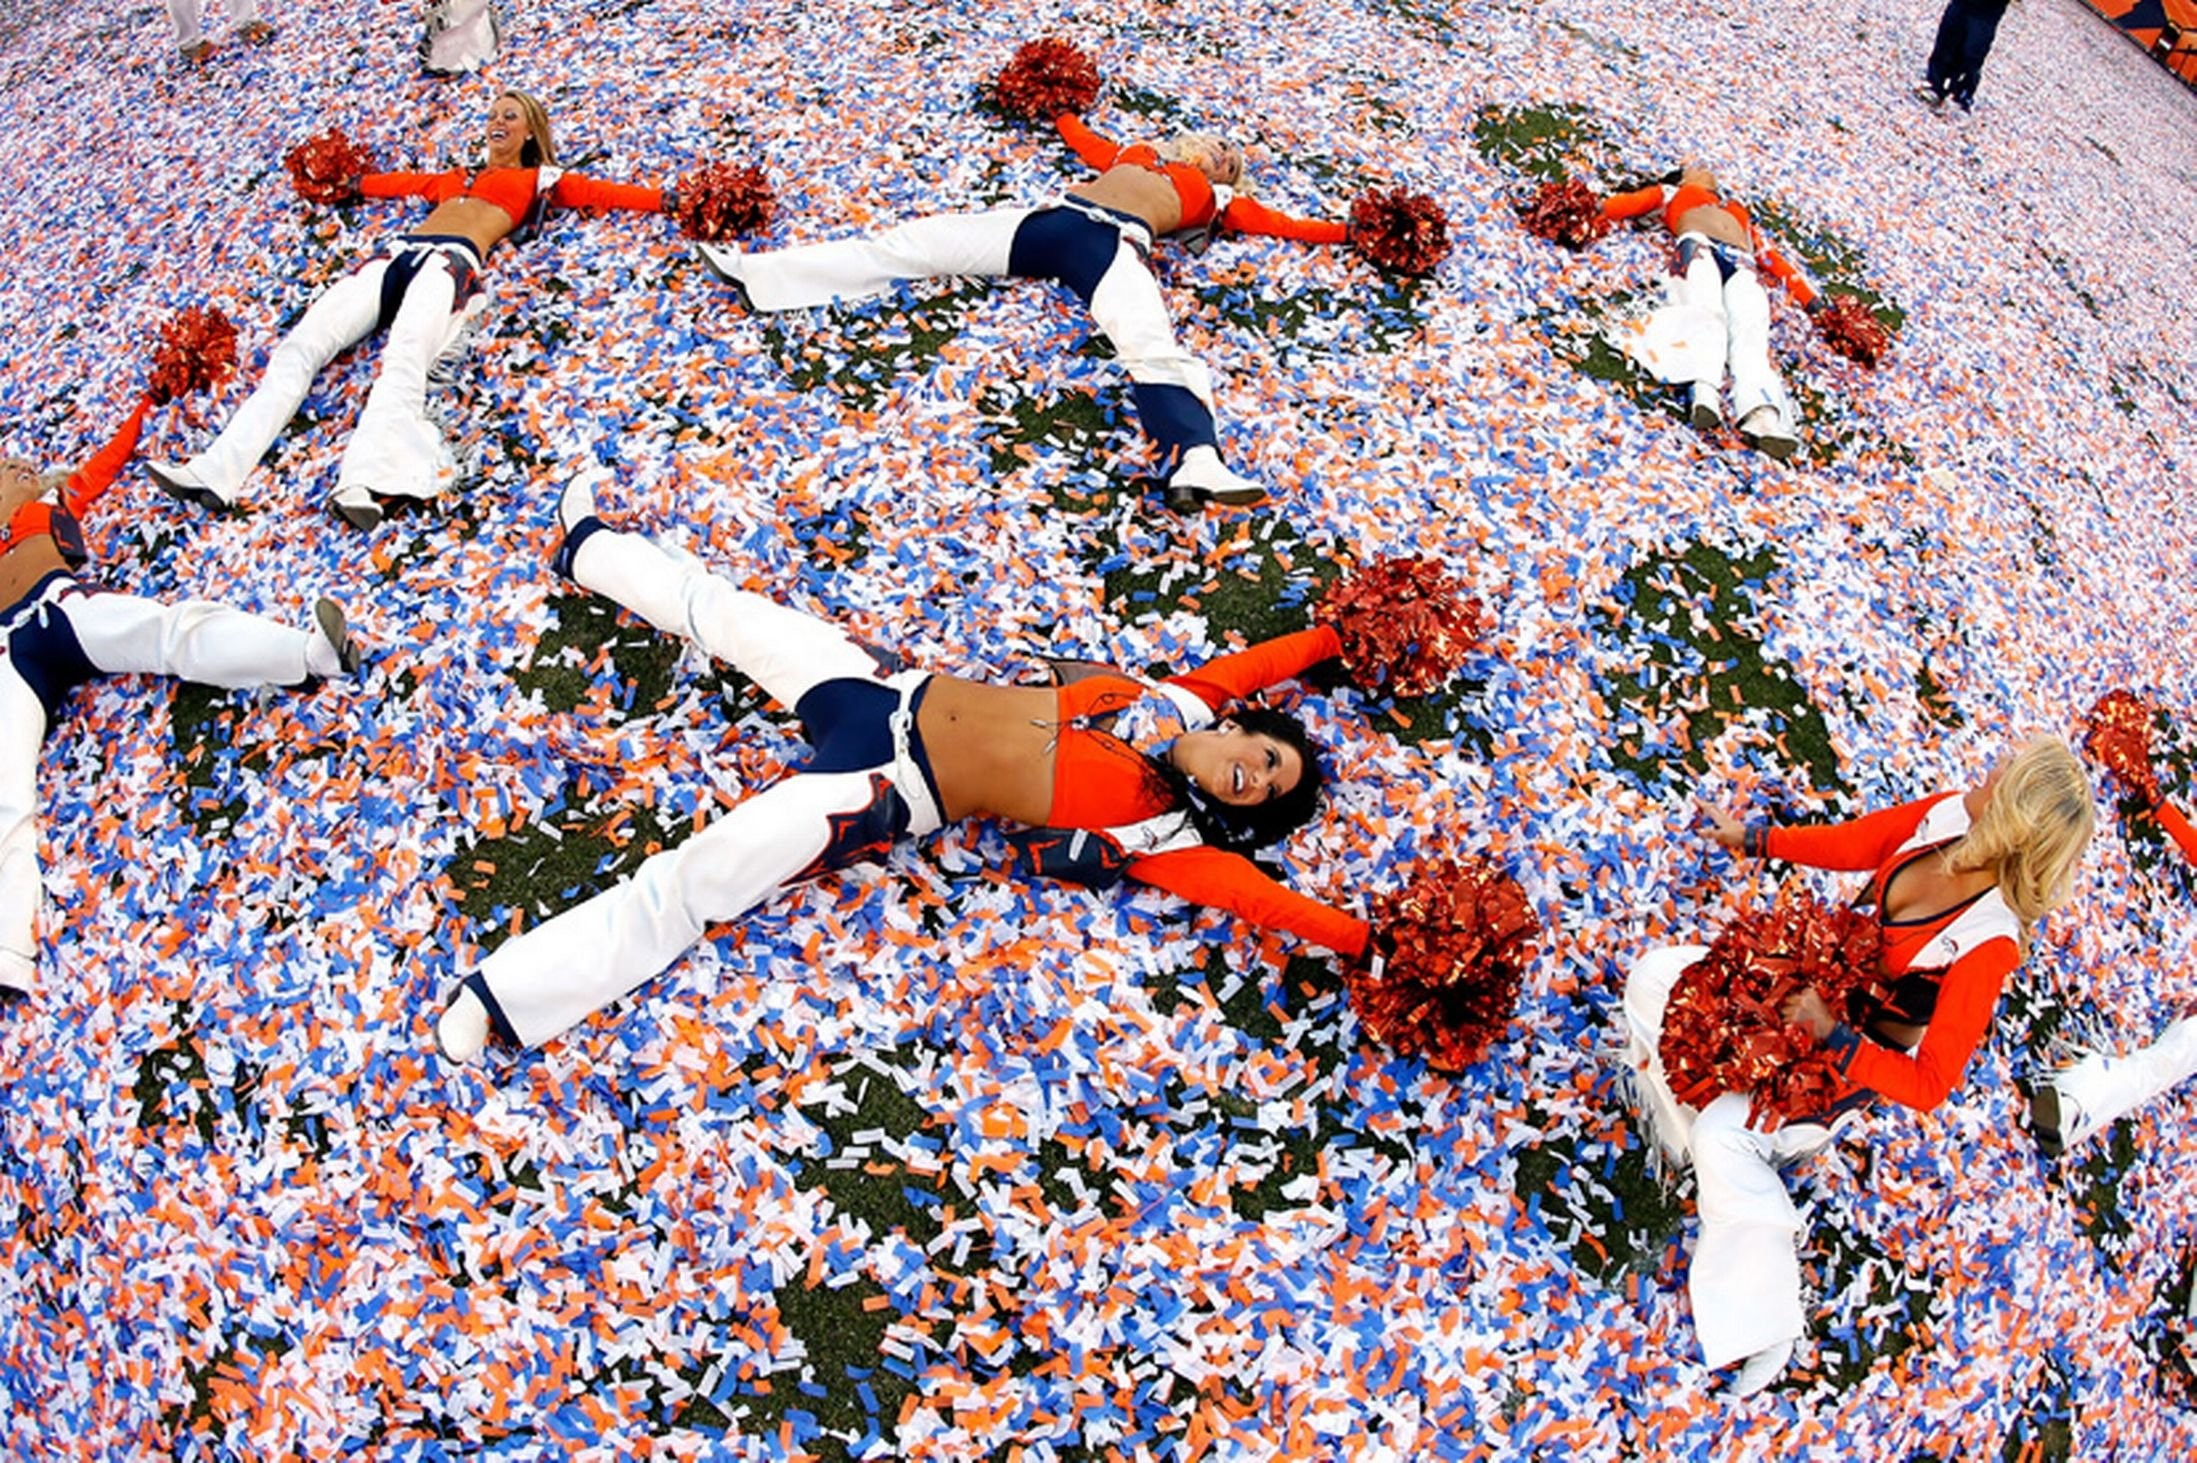 DENVER BRONCOS nfl football cheerleader wallpaper | | 238084 |  WallpaperUP